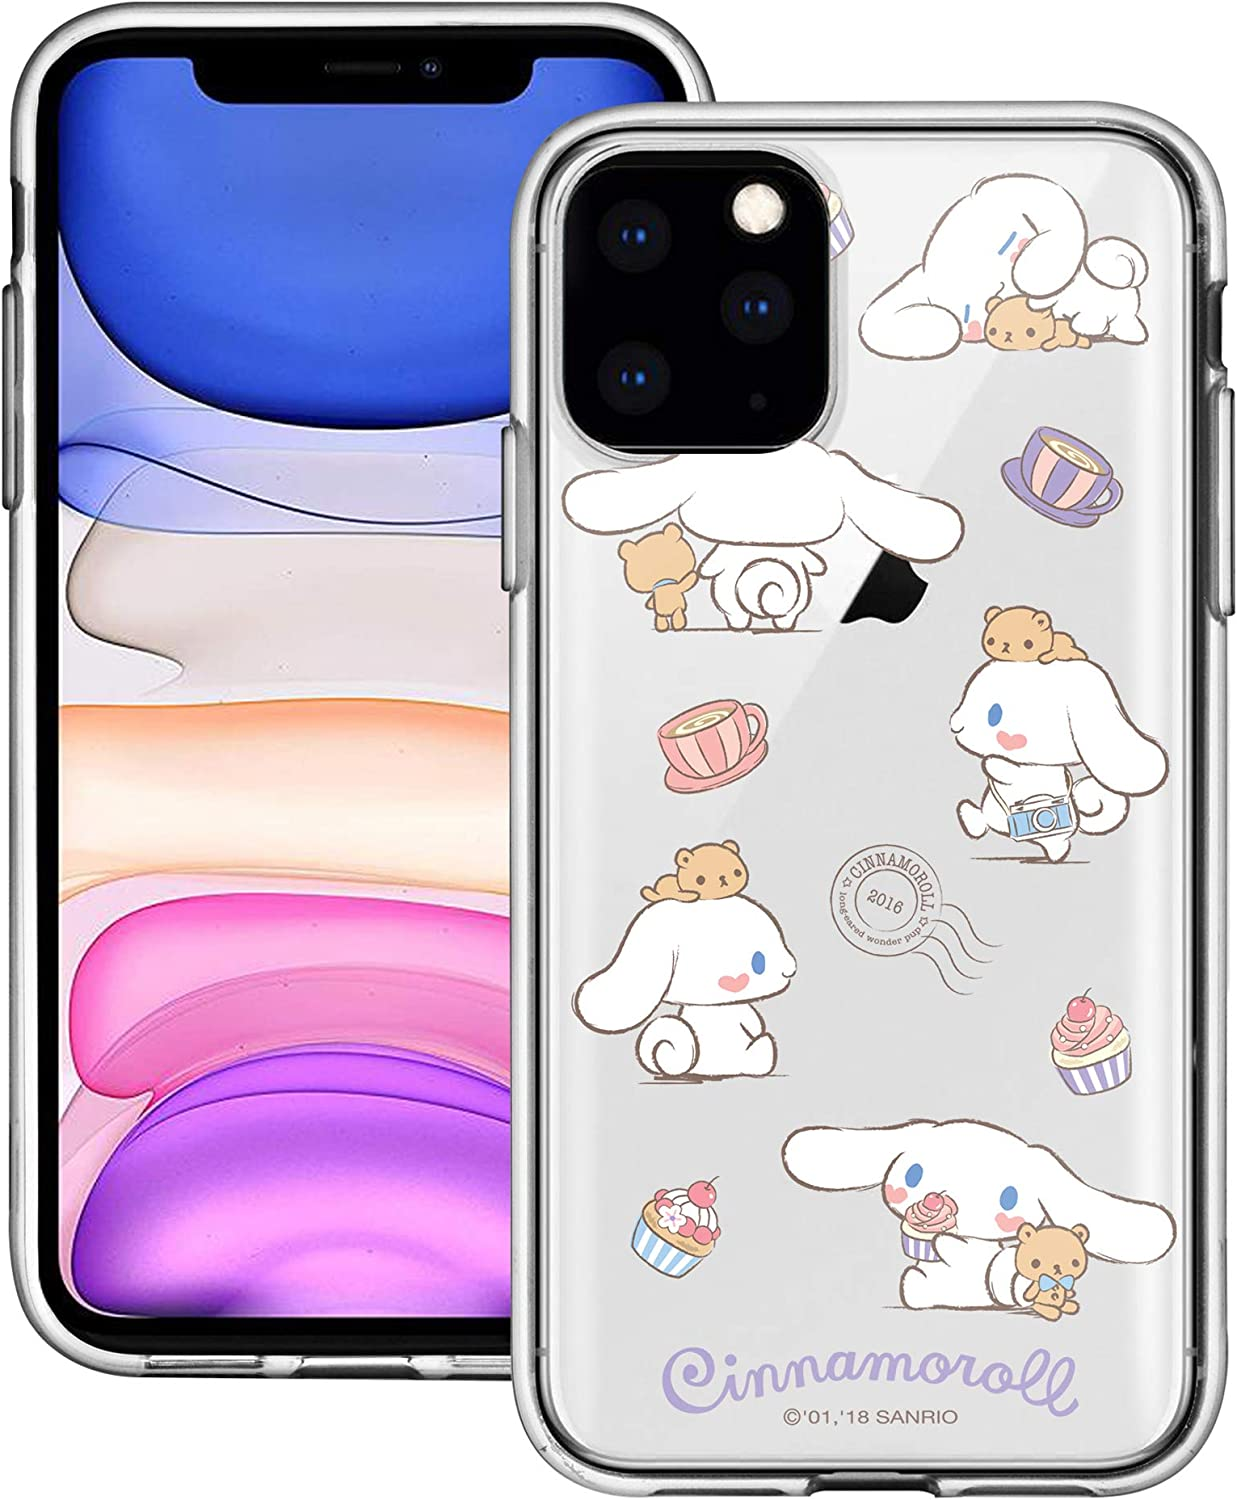 WiLLBee Compatible with iPhone 12 Pro Case/Compatible with iPhone 12 Case (6.1inch) Sanrio Cute Border Clear Jelly Cover - Play Cinnamoroll